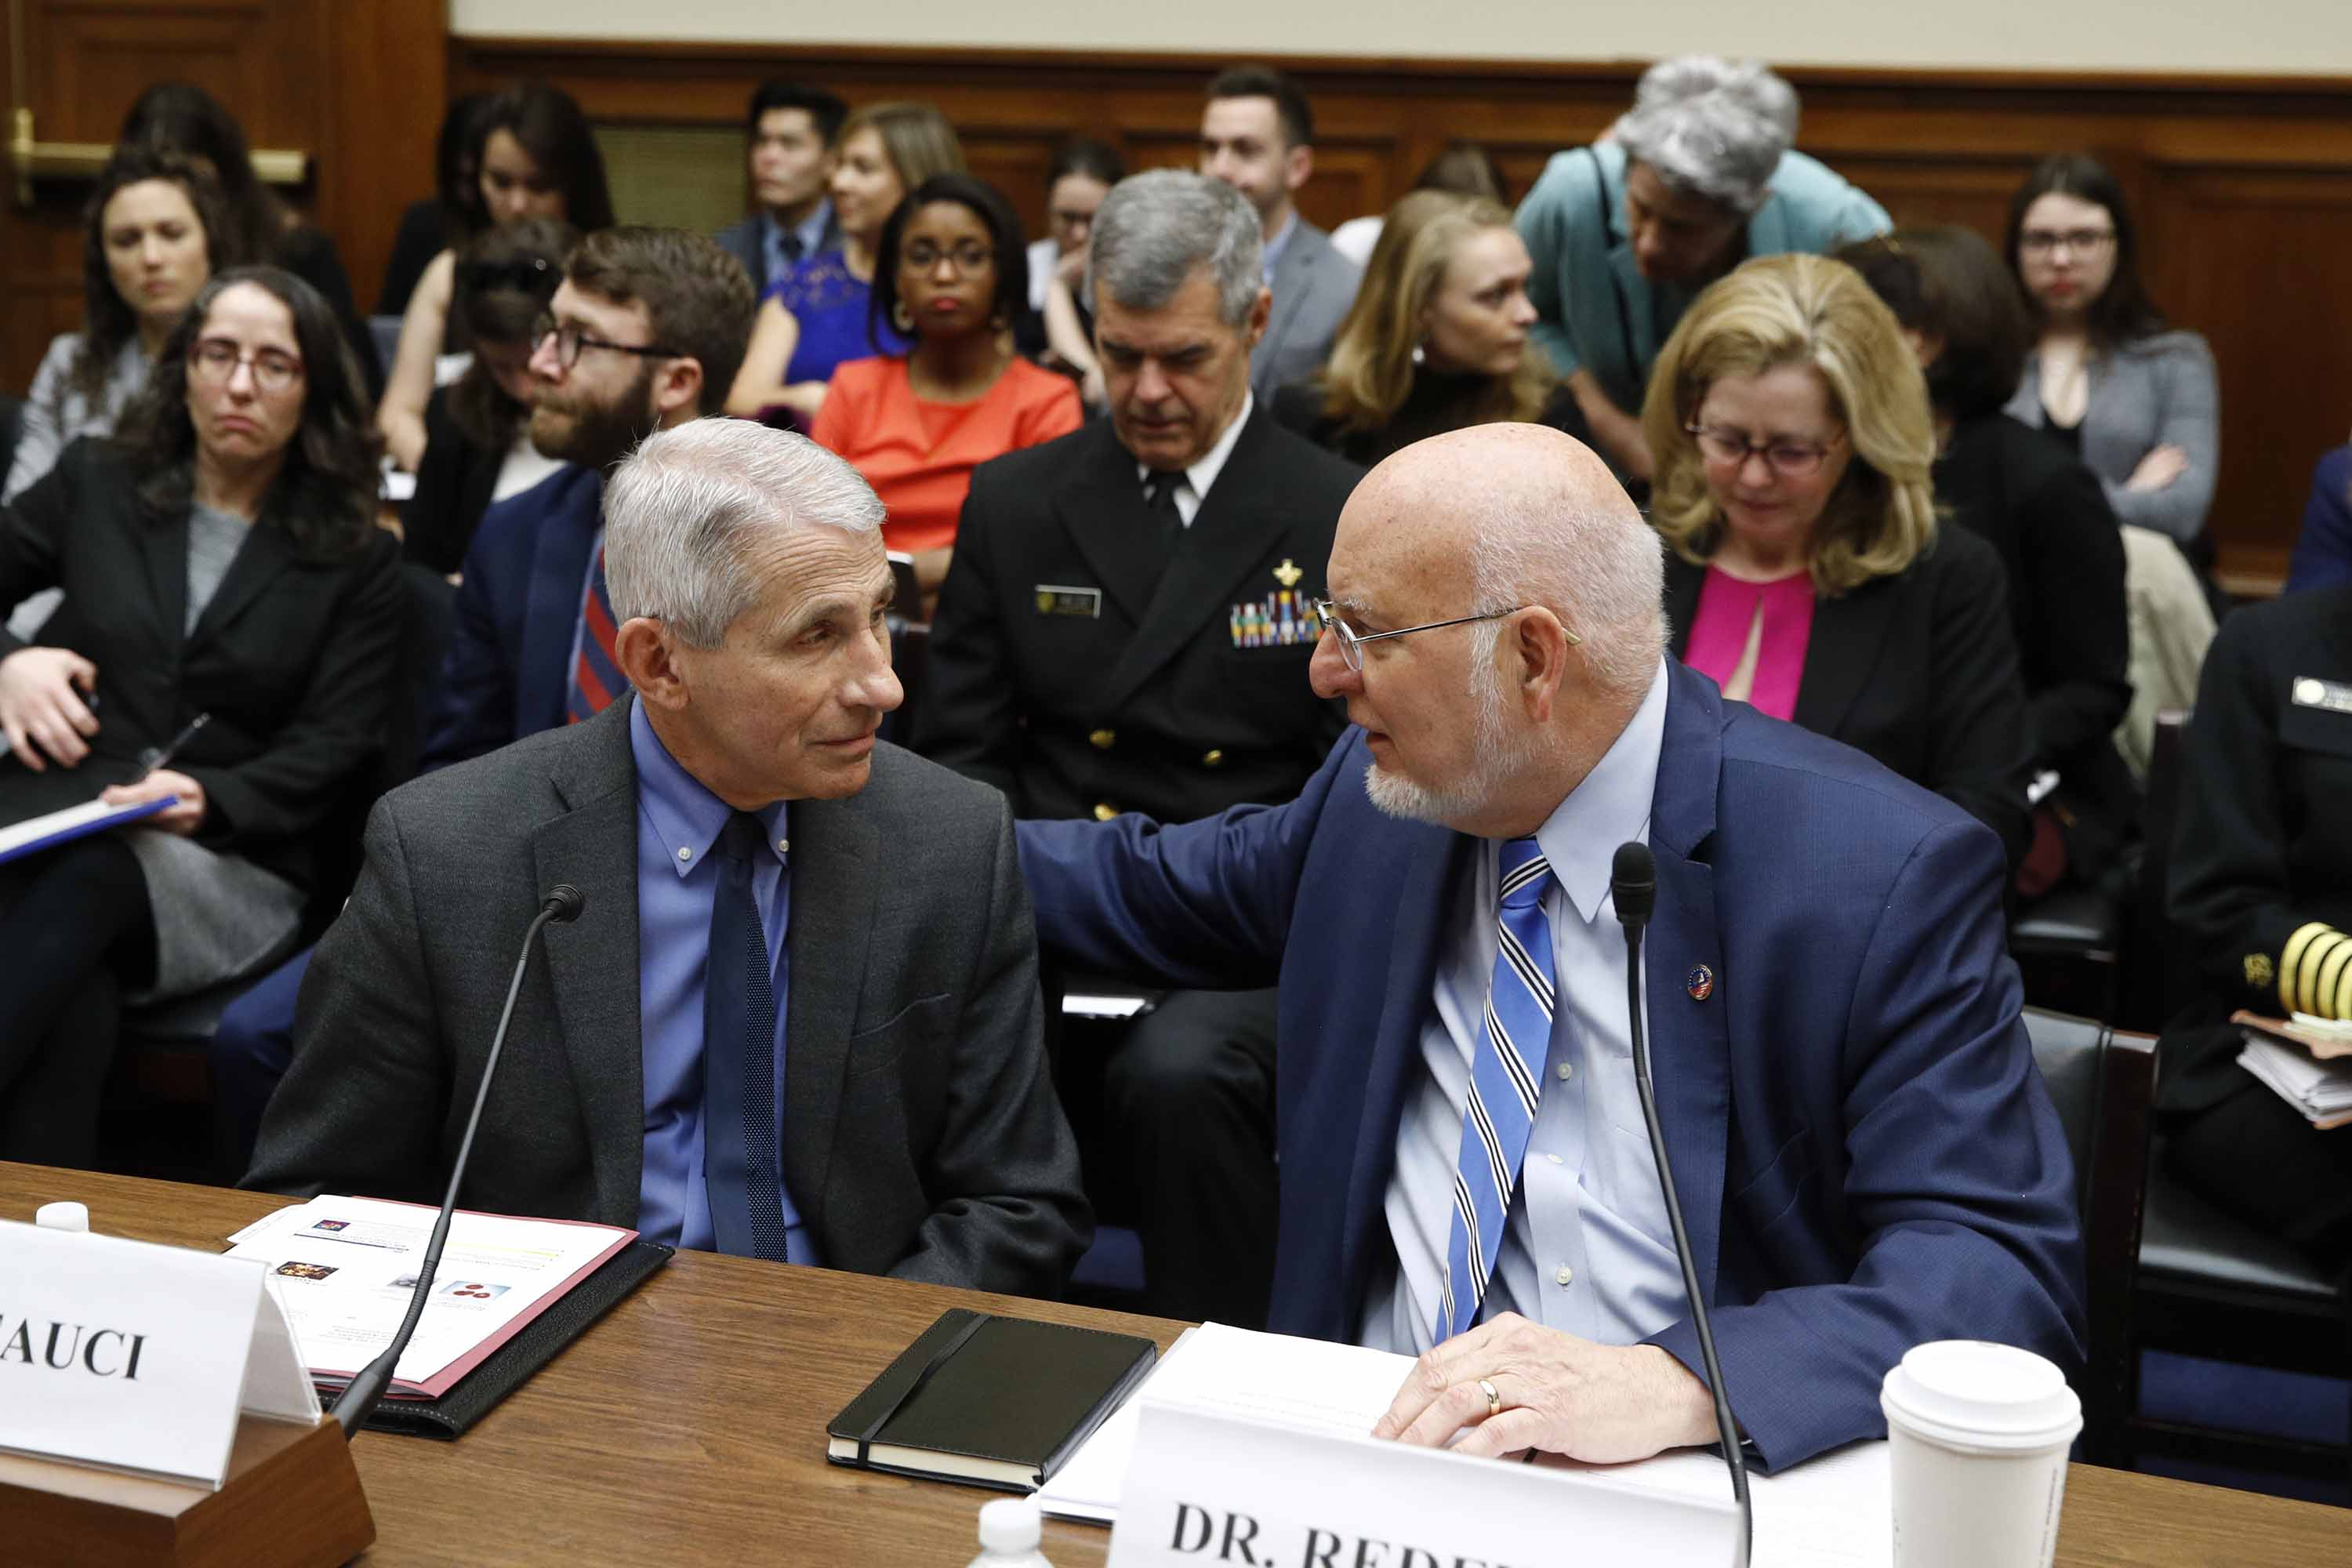 Dr. Anthony Fauci, left, director of the National Institute of Allergy and Infectious Diseases, speaks with Dr. Robert Redfield, director of the Centers for Disease Control and Prevention, before testifying at a House Oversight Committee hearing on the coronavirus outbreak in Washington, D.C. on Wednesday.